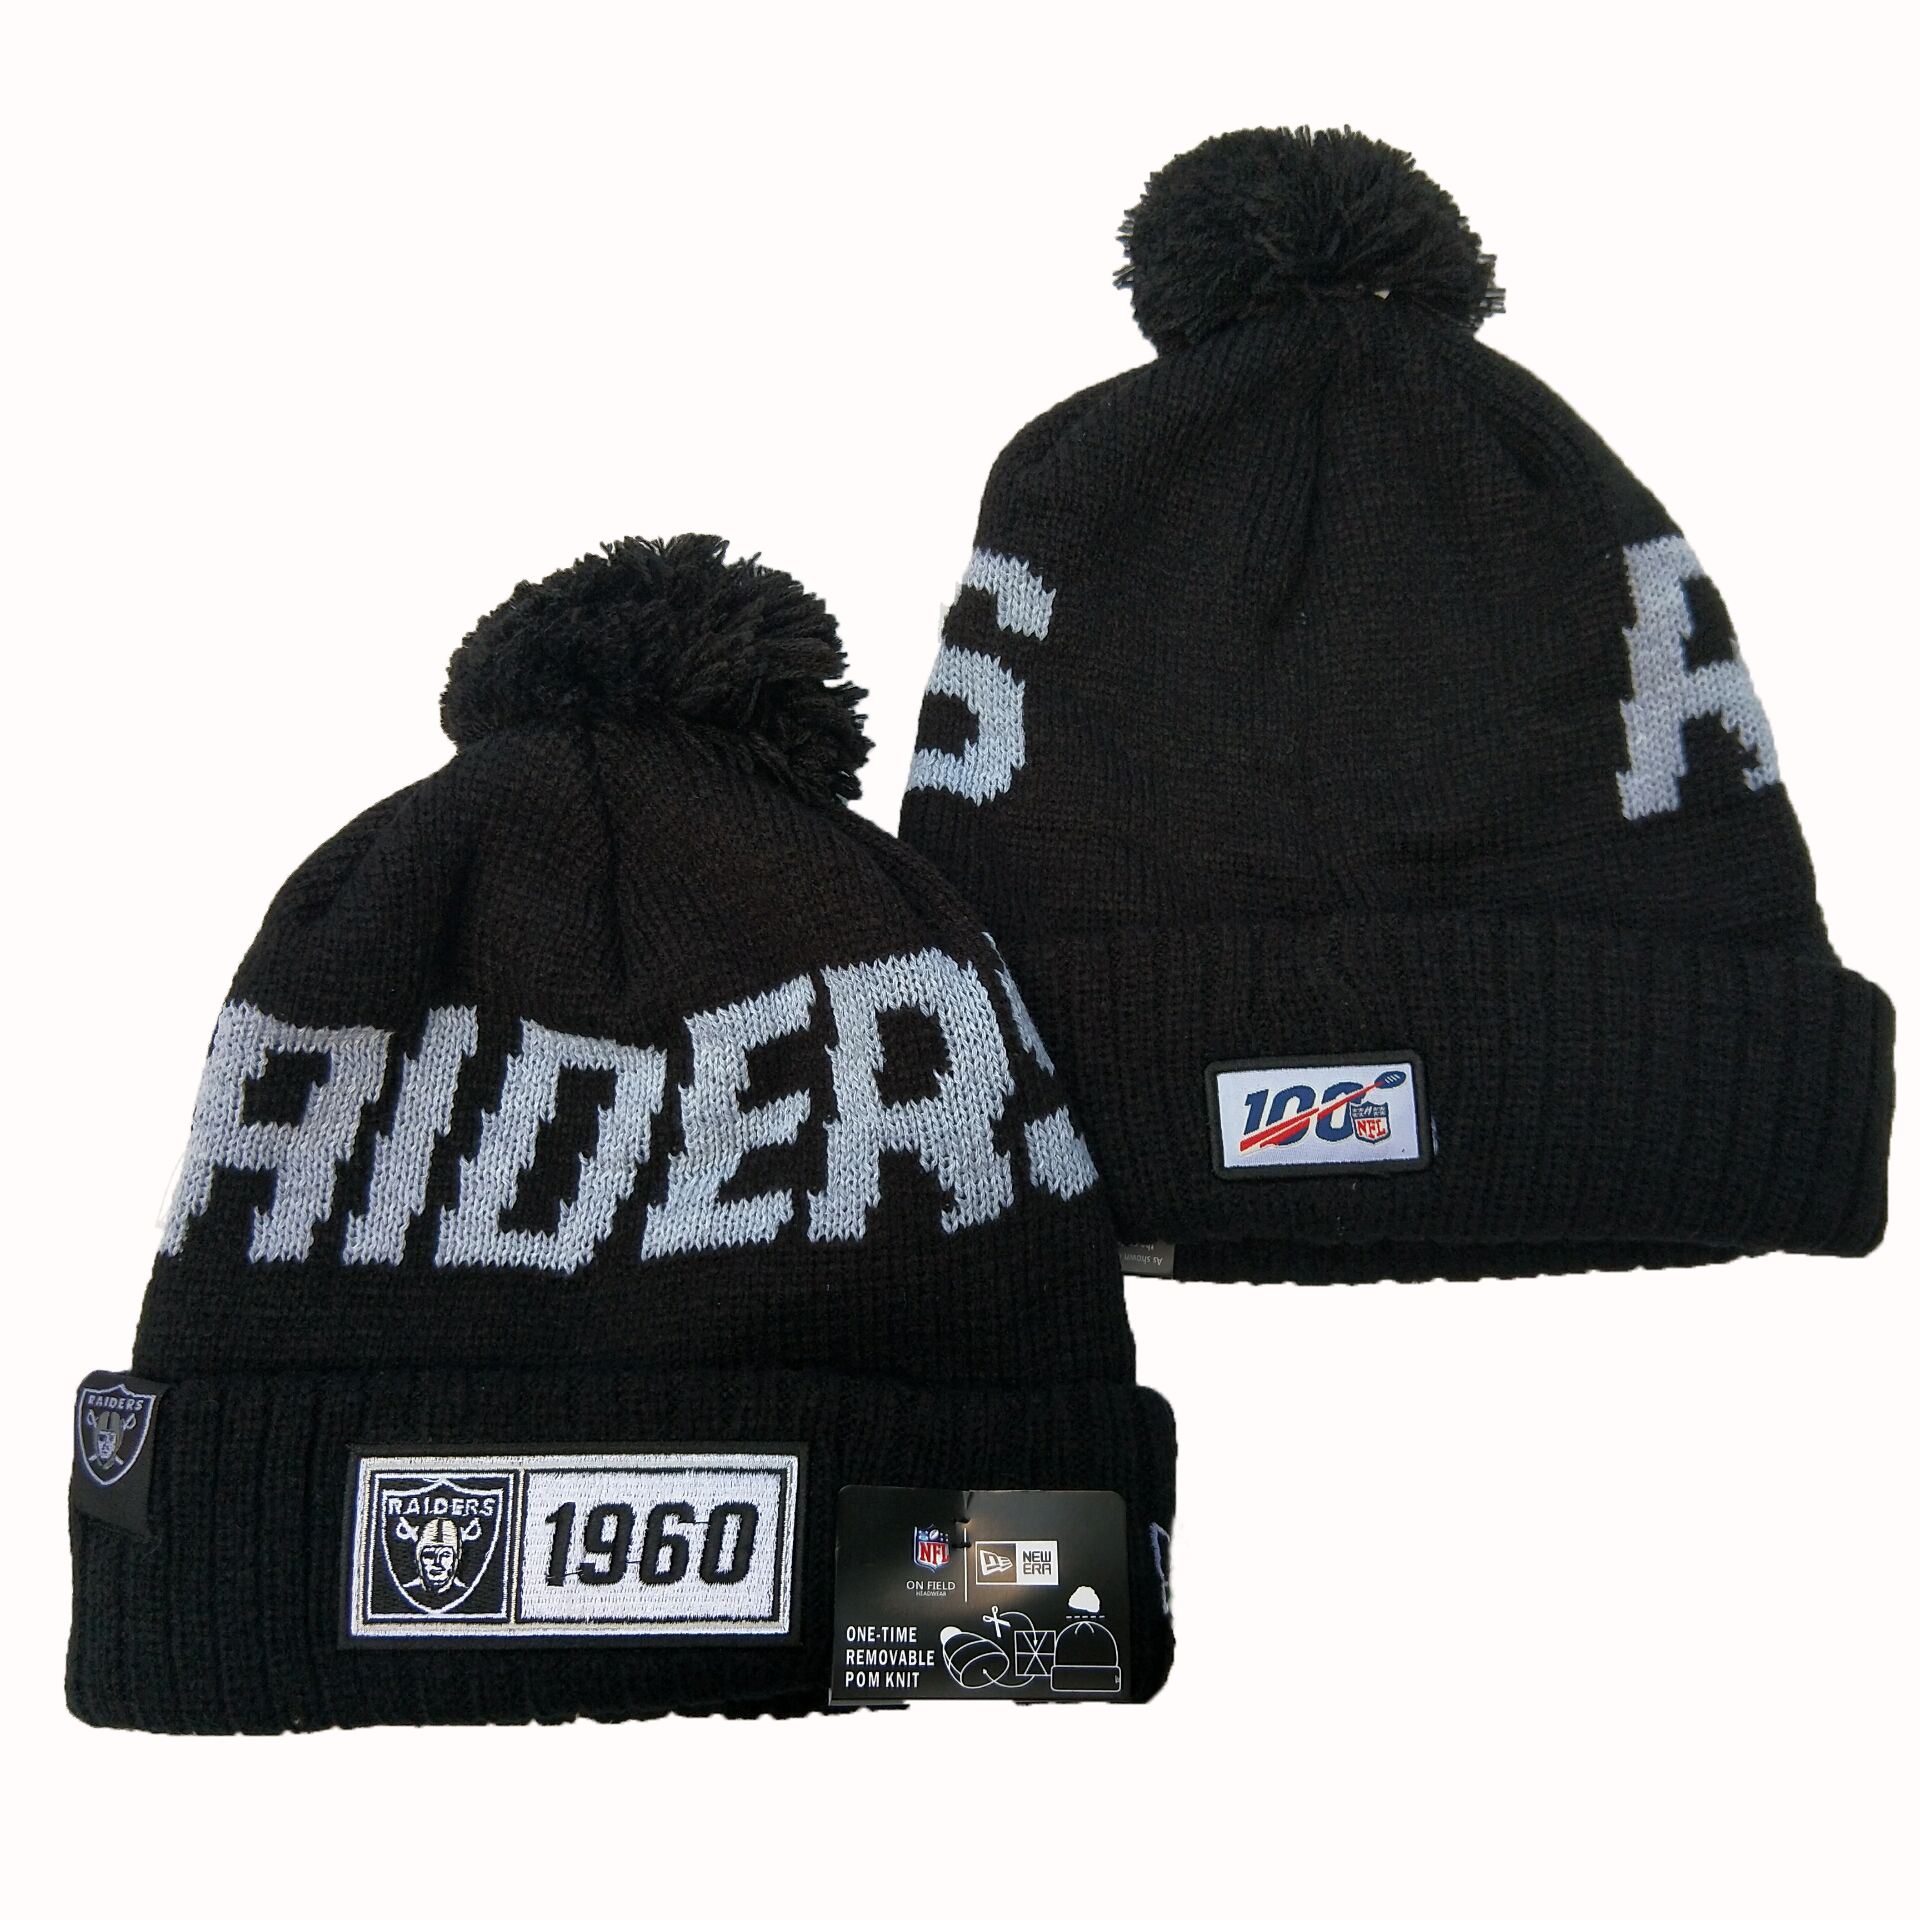 Las Vegas Raiders Knit Hats 068